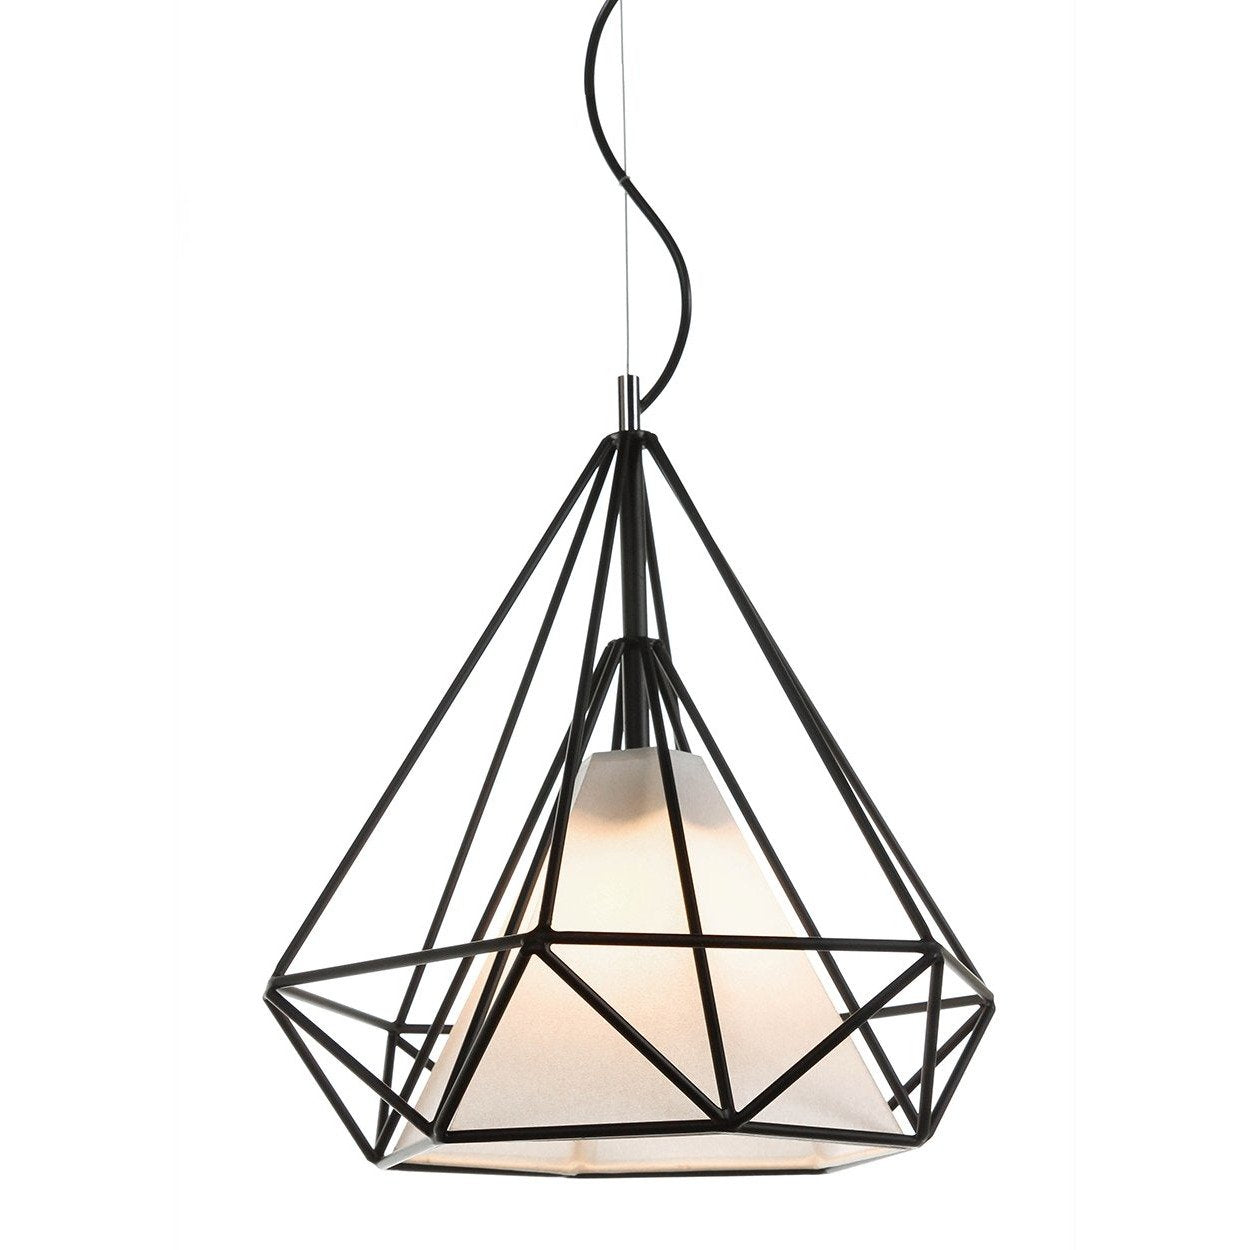 [LM160PBLK] The Enns Pendant Lamp SALE